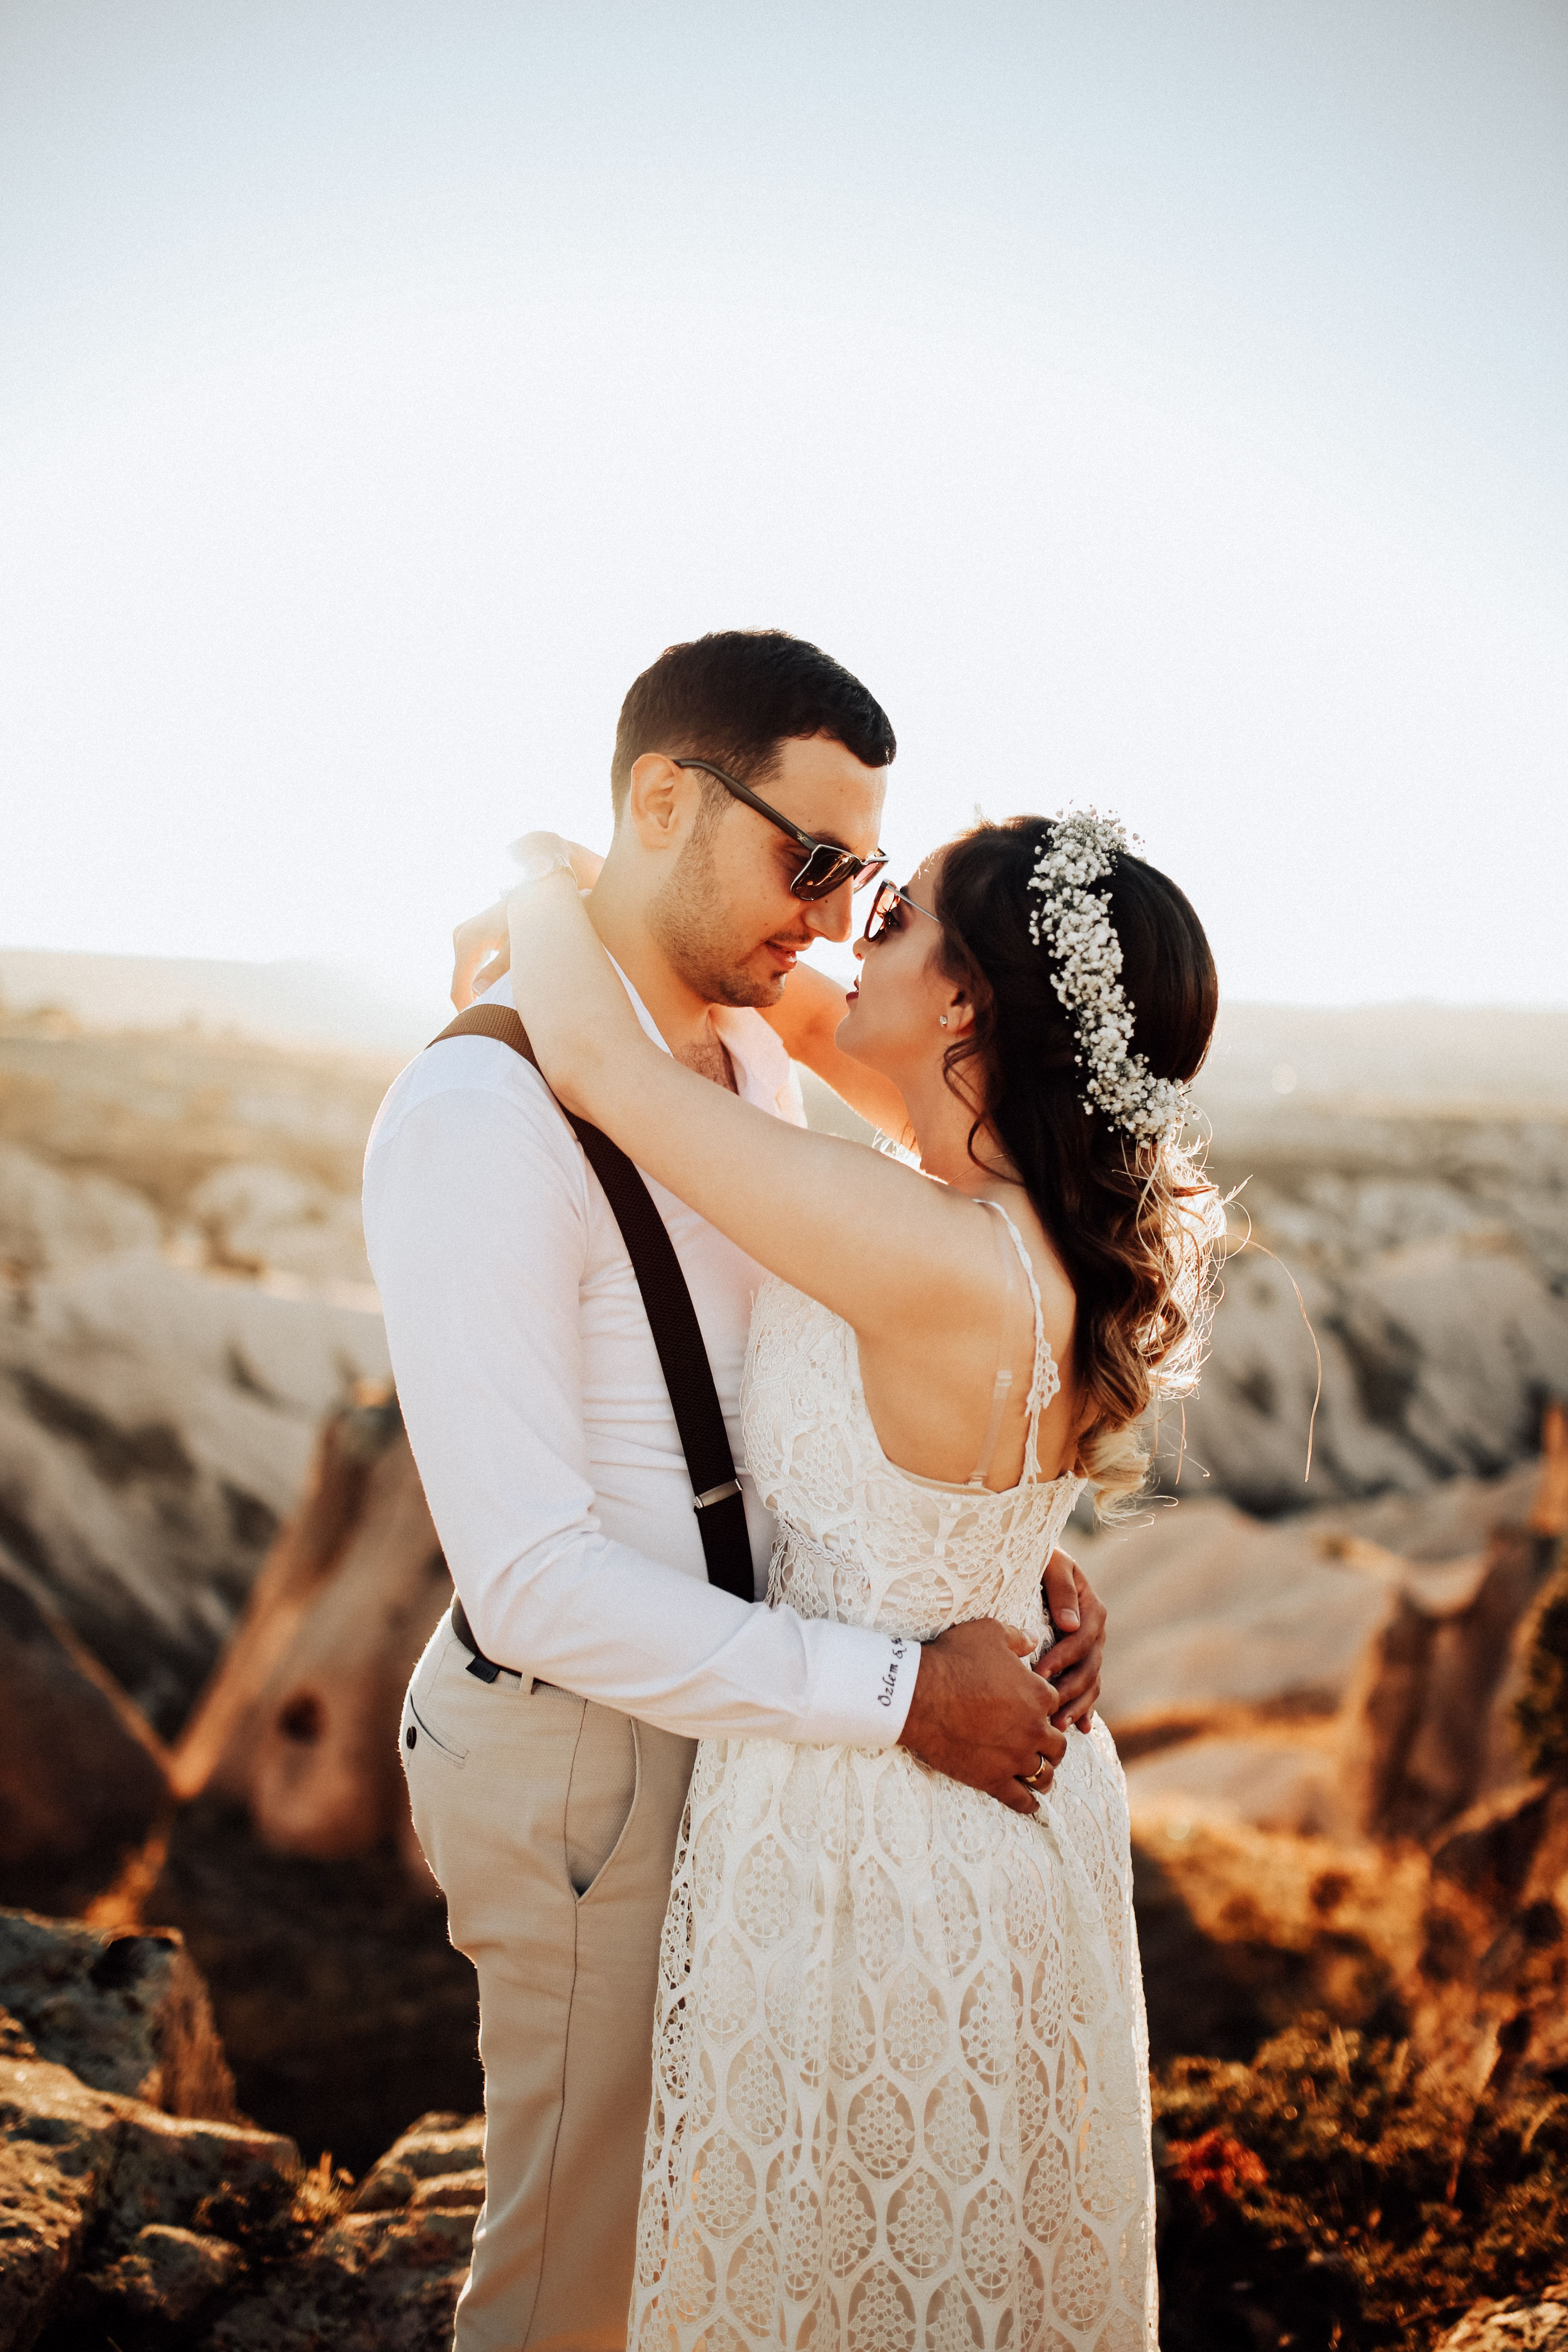 5 Dreadful Wedding Pics Newly Wed Couple Hugging Apparel Clothing Wedding In 2020 Wedding Photography Bride Best Wedding Hairstyles